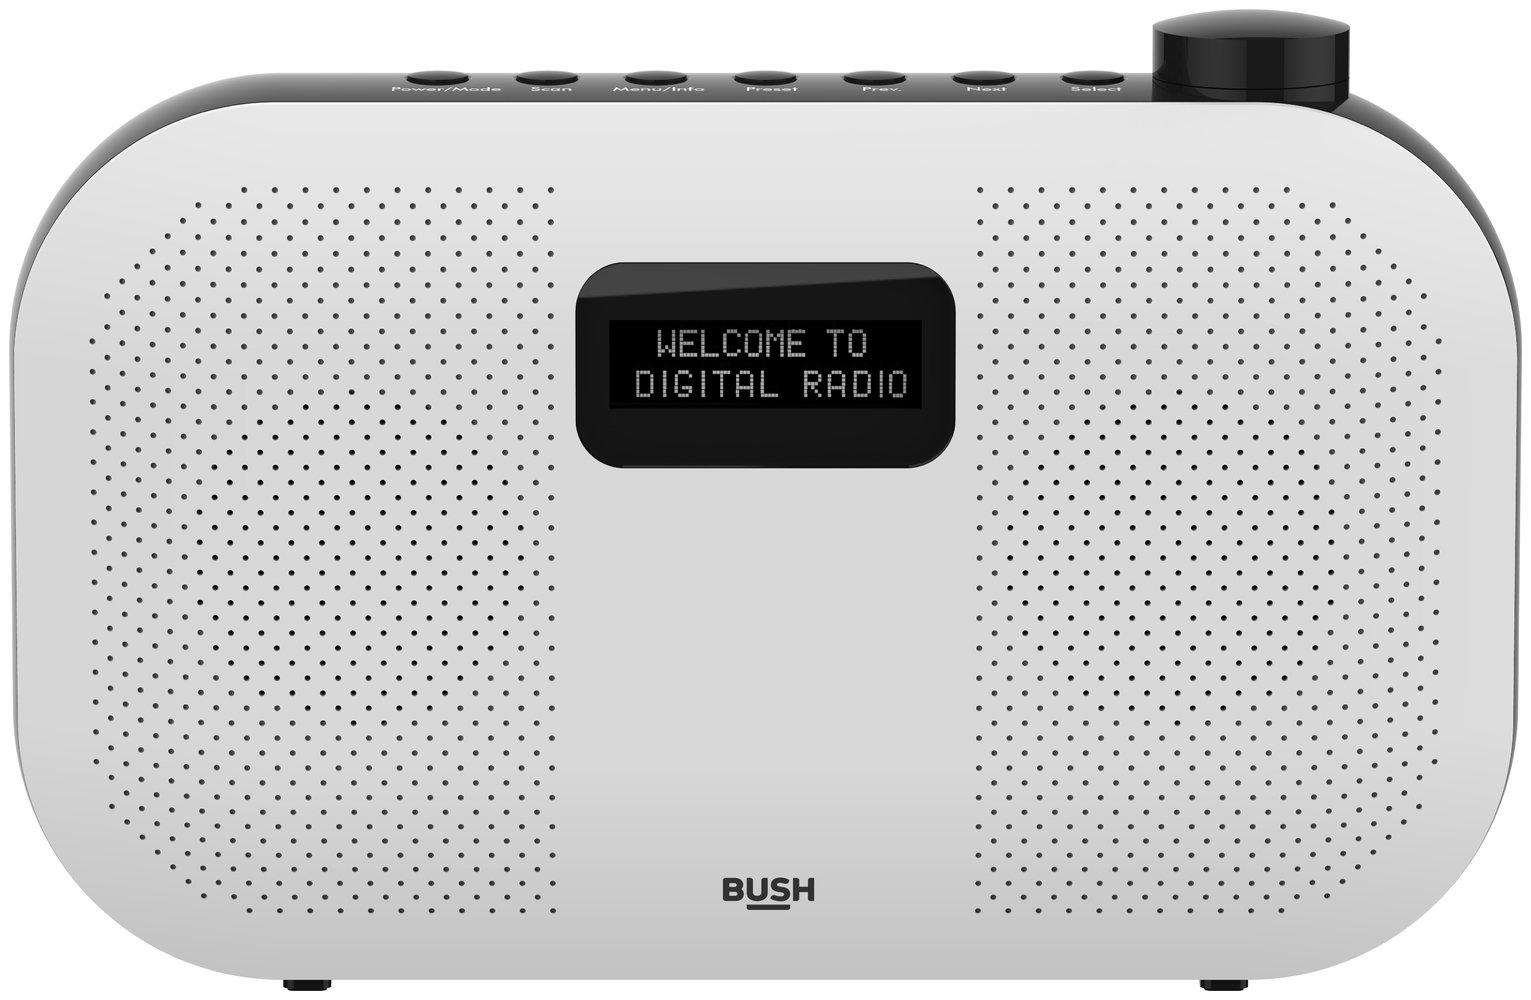 Bush Stereo DAB Radio - White